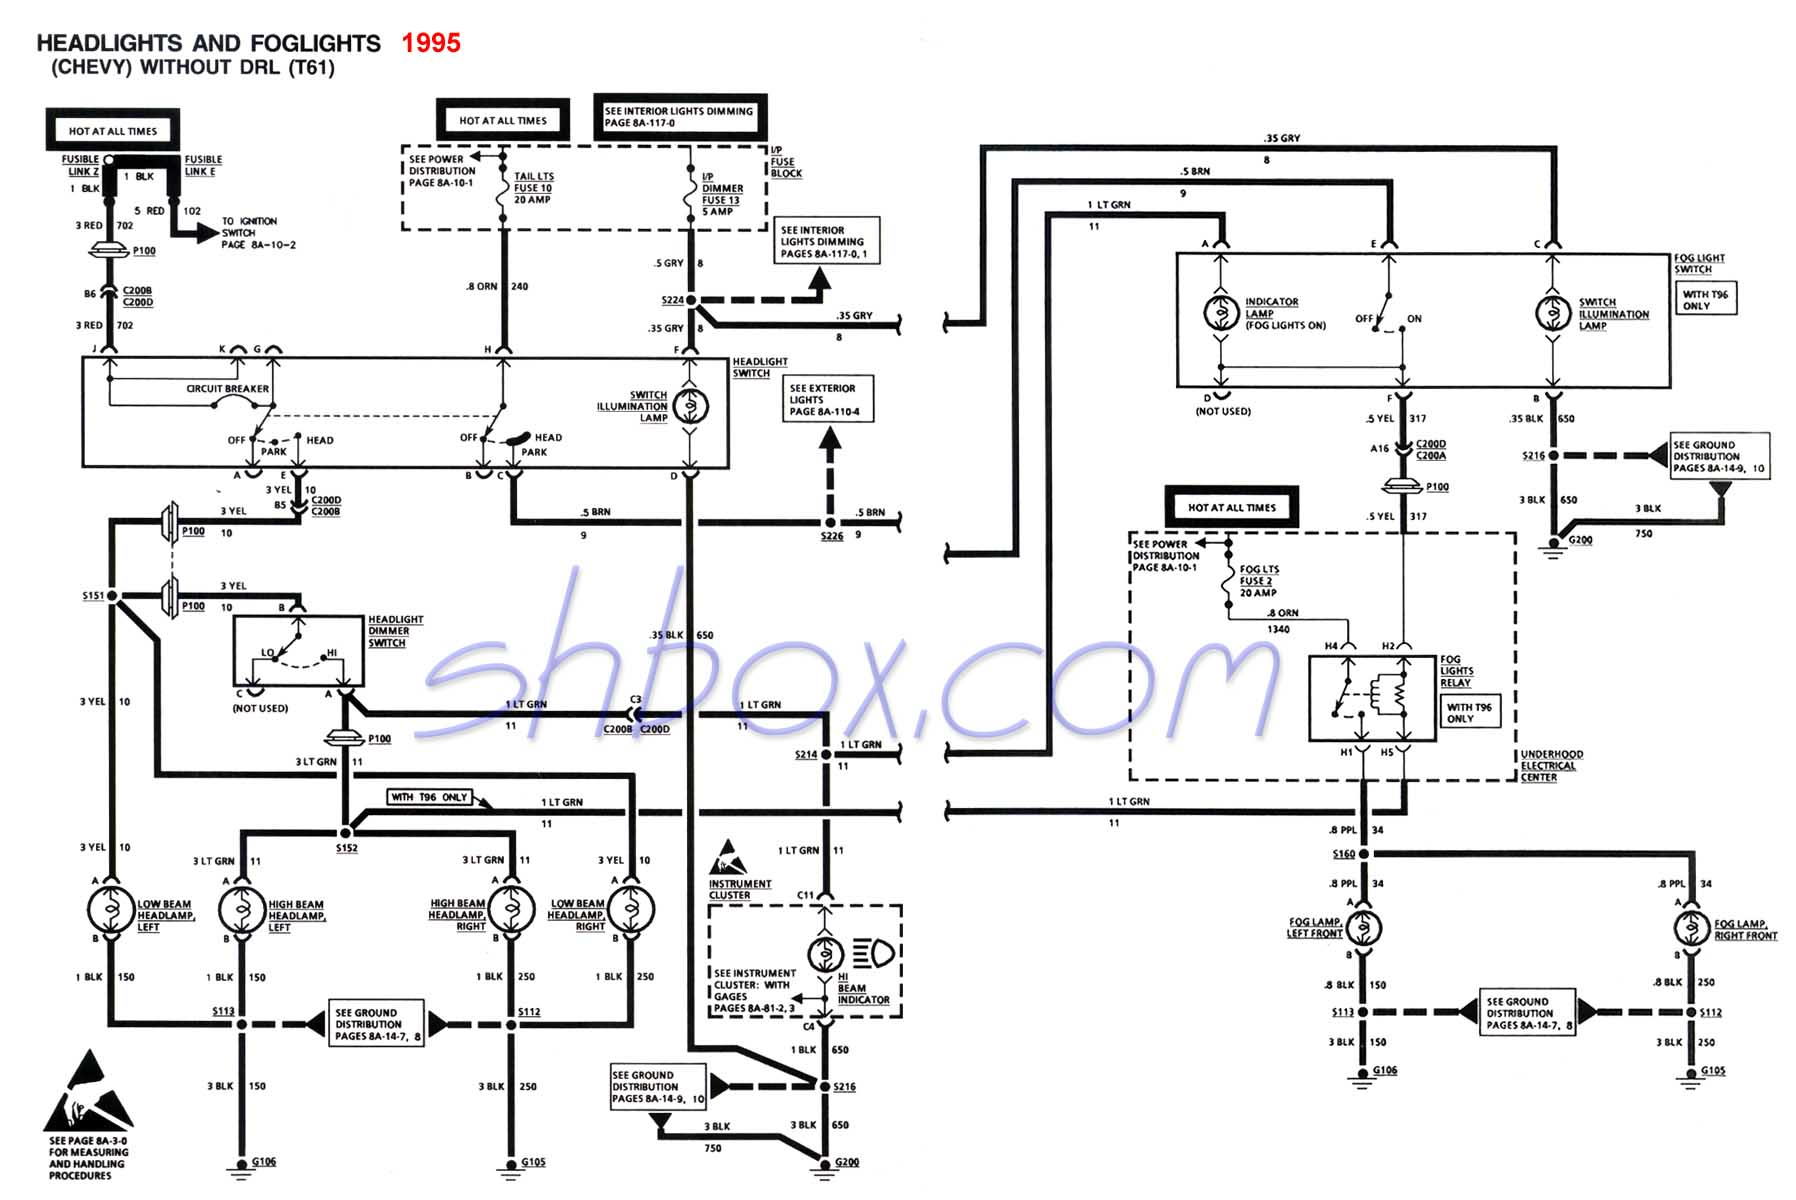 hight resolution of headlight foglight schematic 1995 camaro